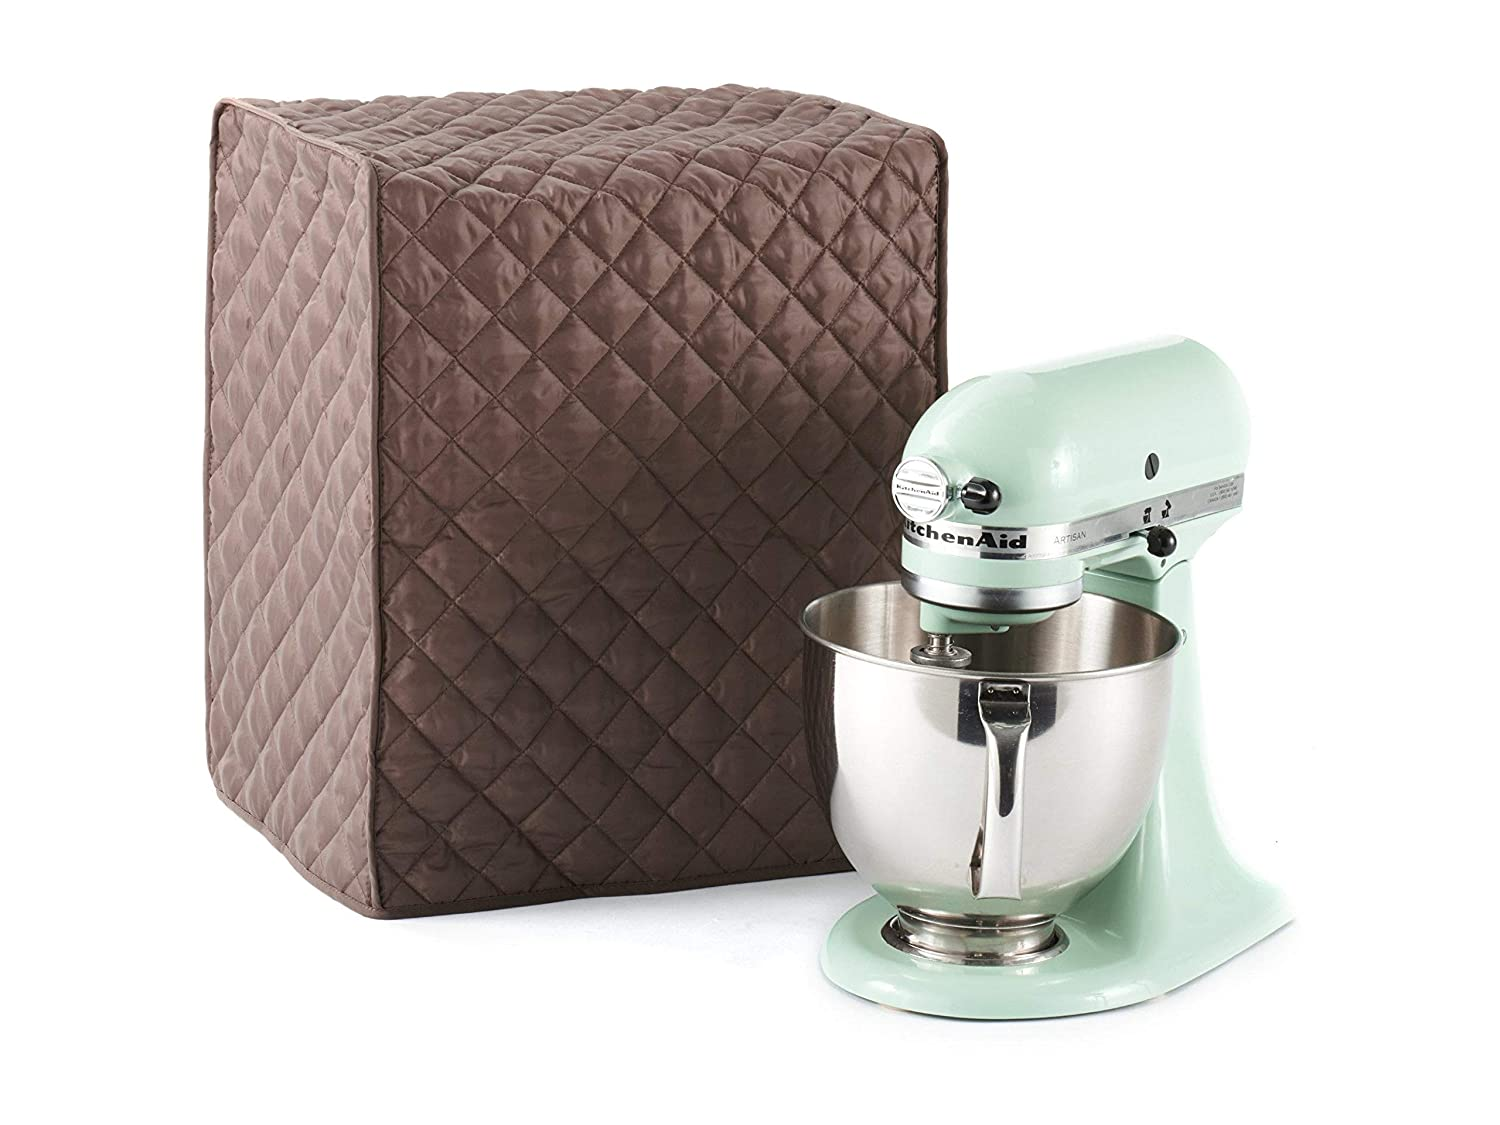 Covermates - Mixer Cover - 14W x 9D x 14H - Quilted Diamond Collection - 2 YR Warranty – Dust Protection - Washable - Bronze